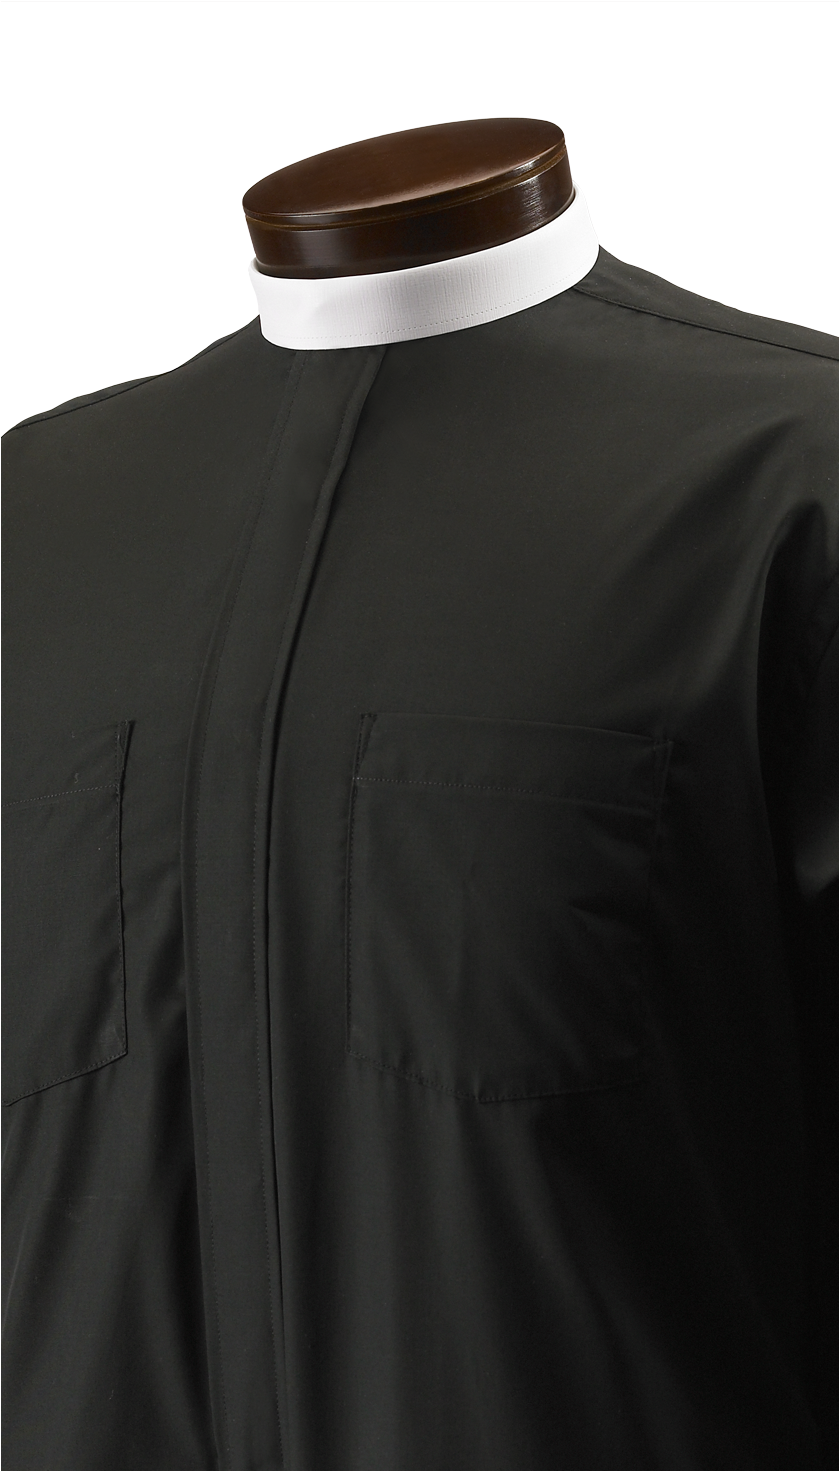 Download Clergy Shirts Collar Png Image With No Background